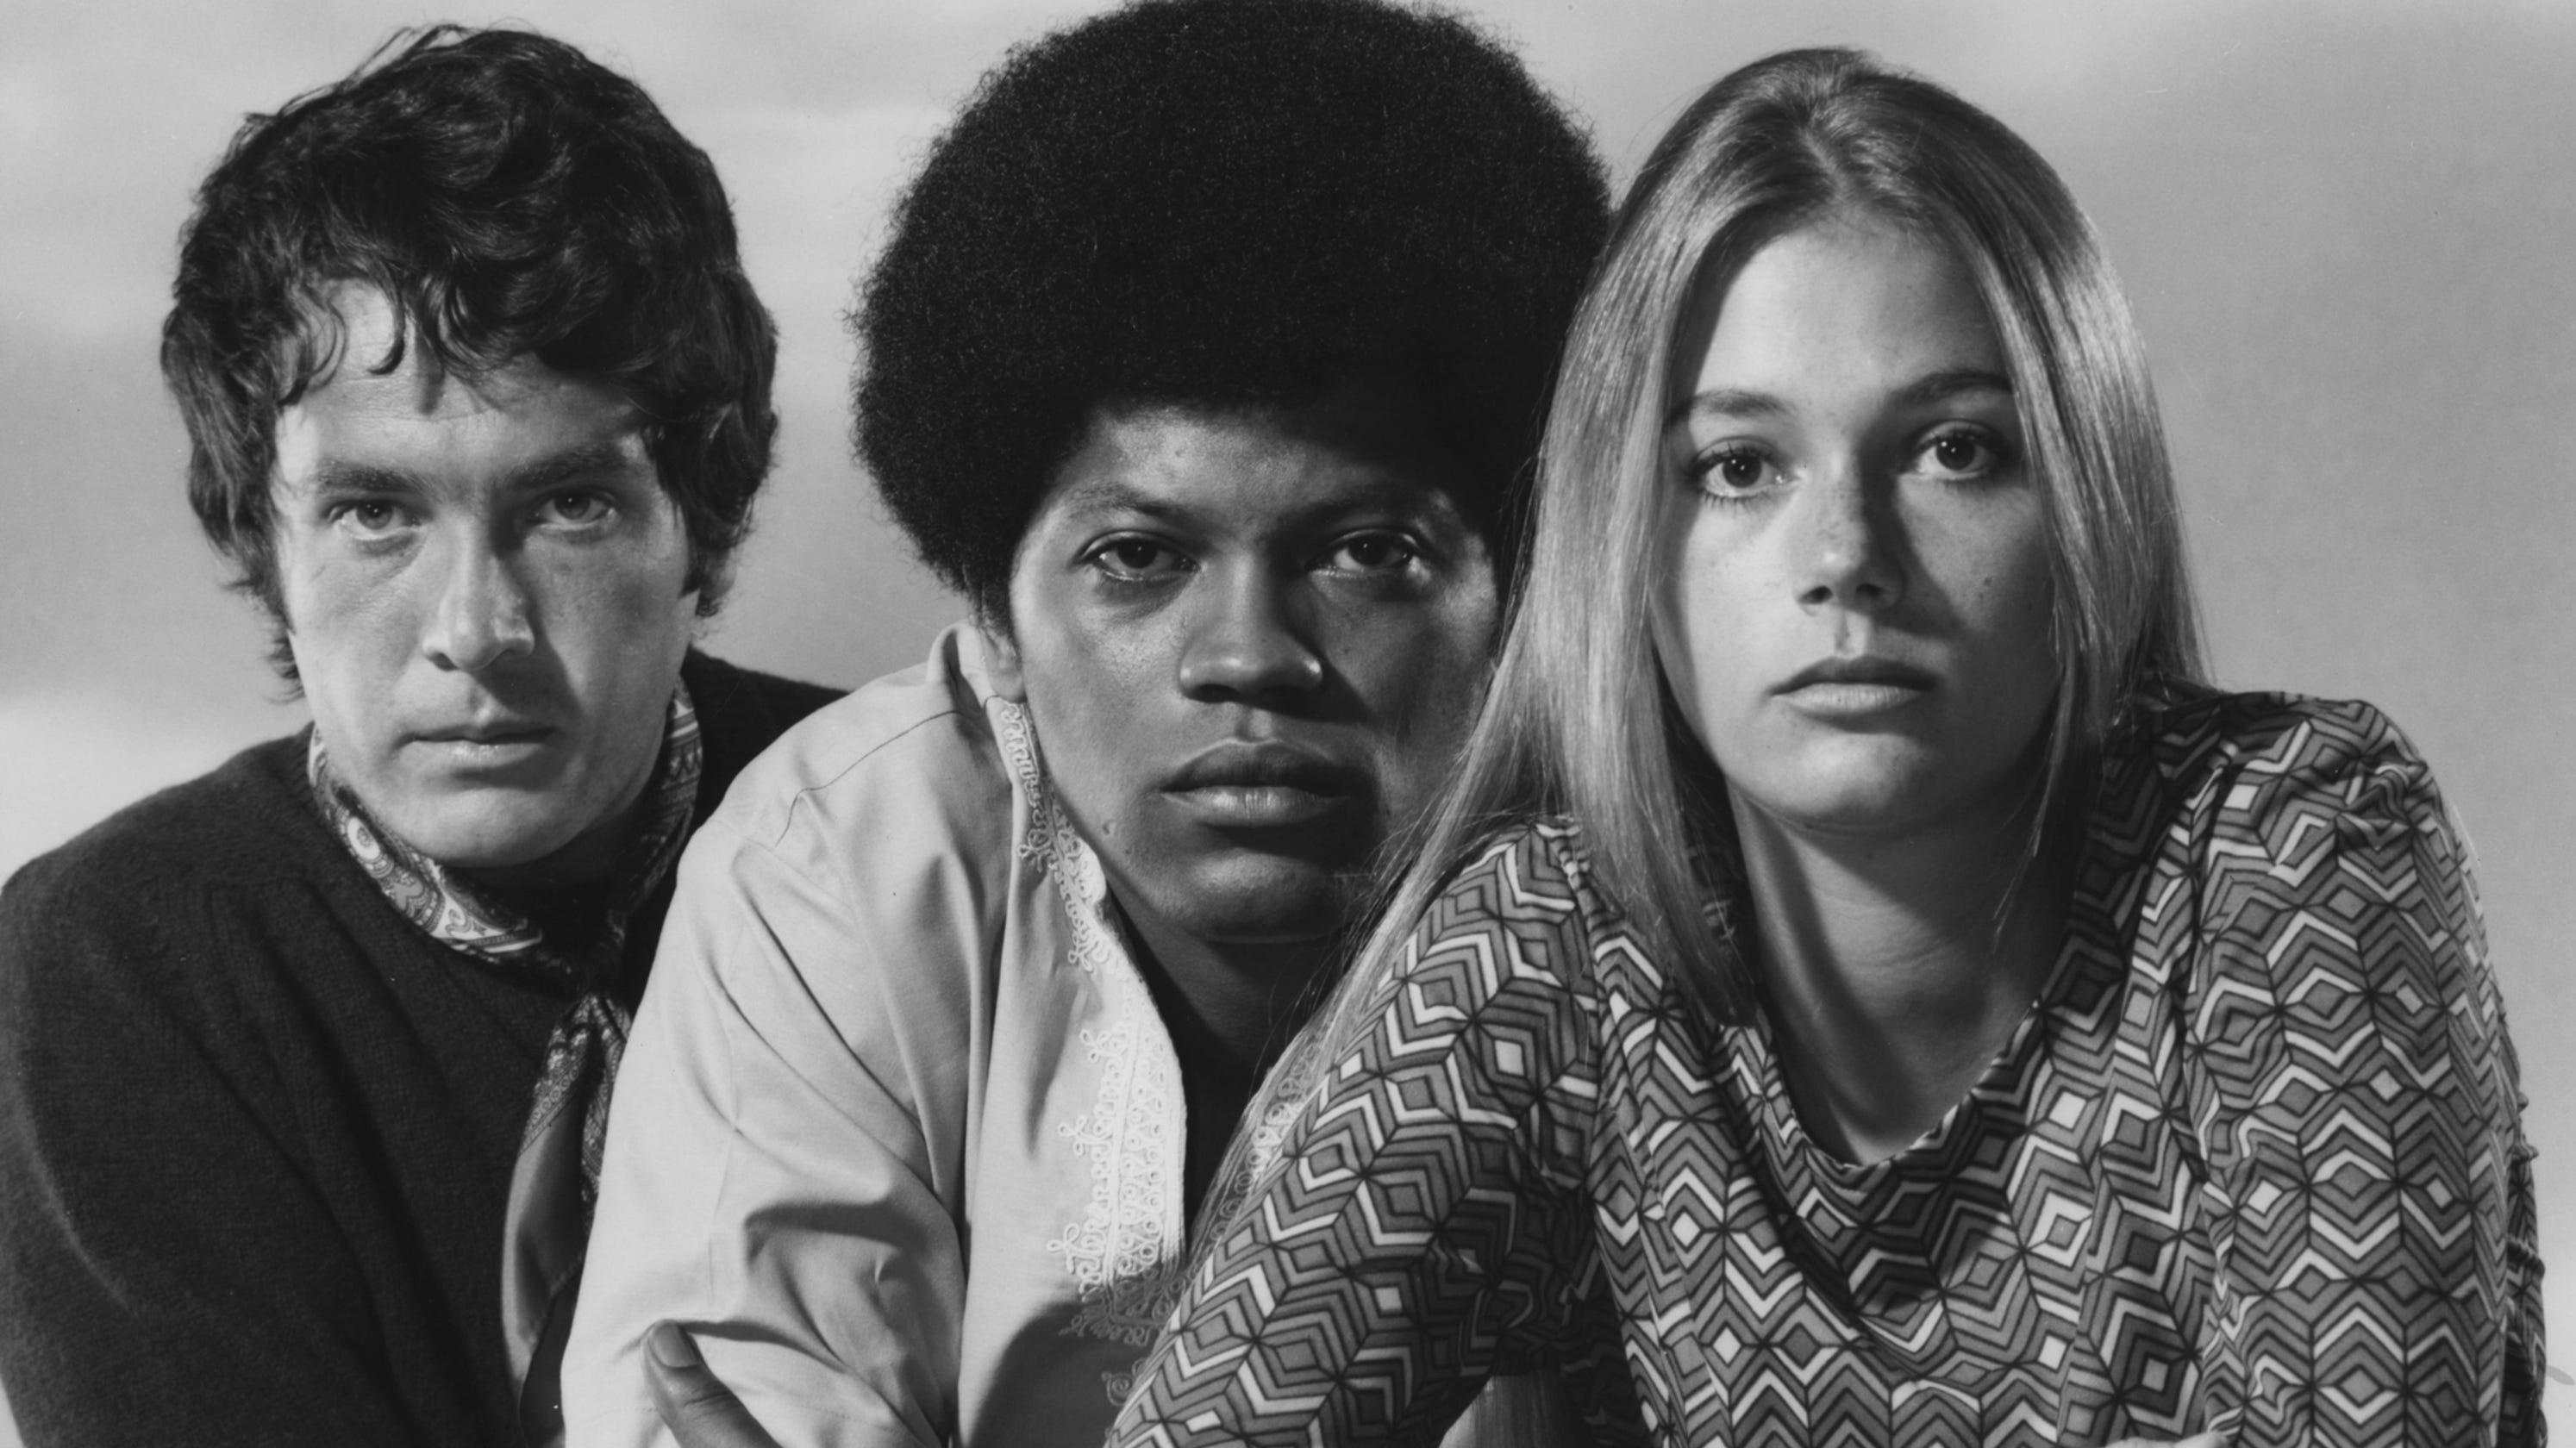 Peggy Lipton, star of 'The Mod Squad' and 'Twin Peaks,' dies at 72